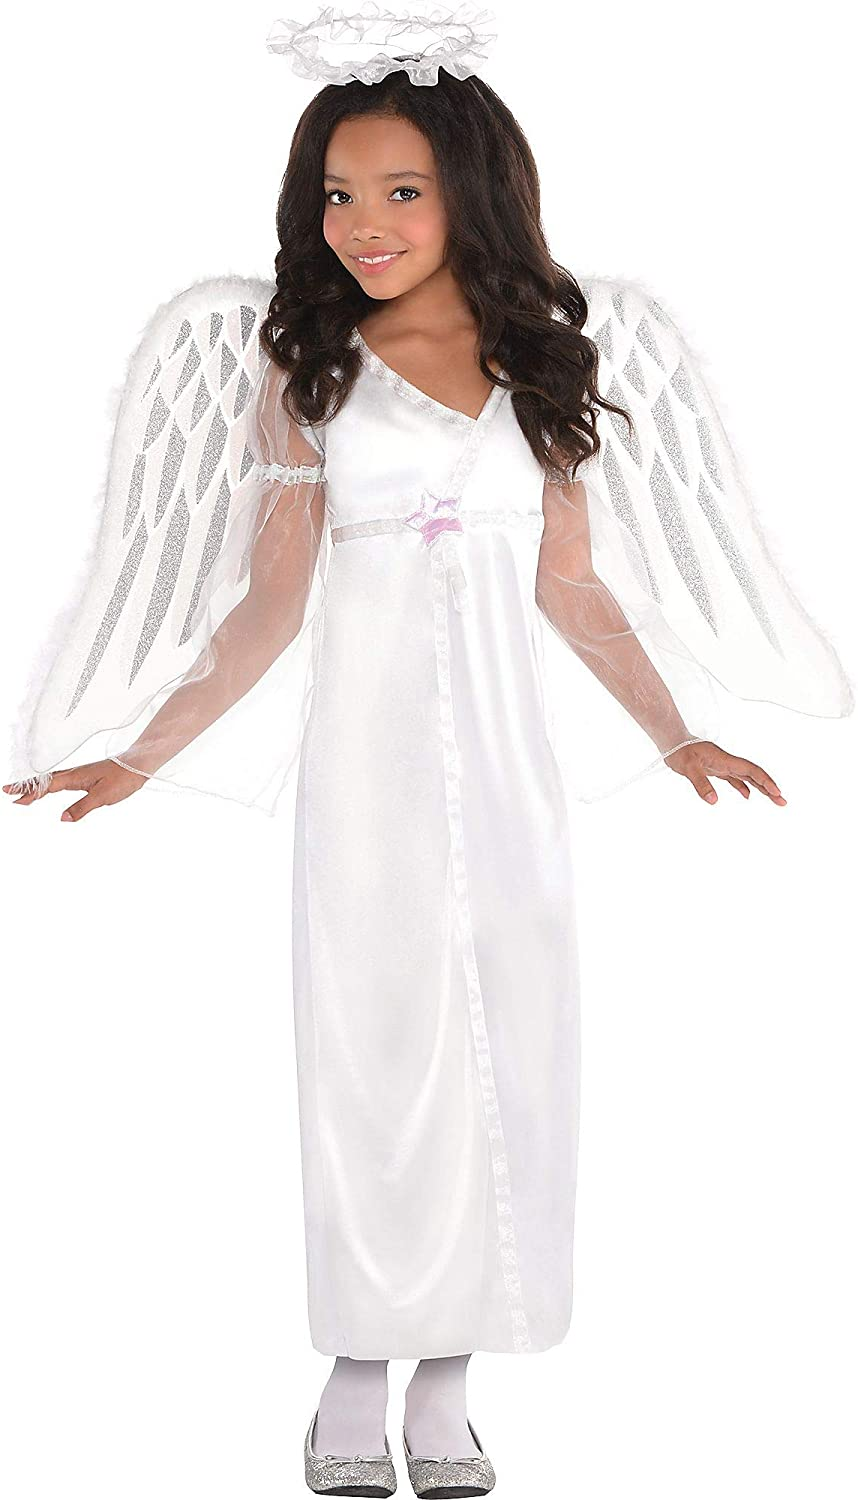 amscan Costumes USA Heavenly Angel Costume for Girls, Size Small, Includes a Silken White Dress and a Ruffled Halo Headband, Multicolor, Children Small